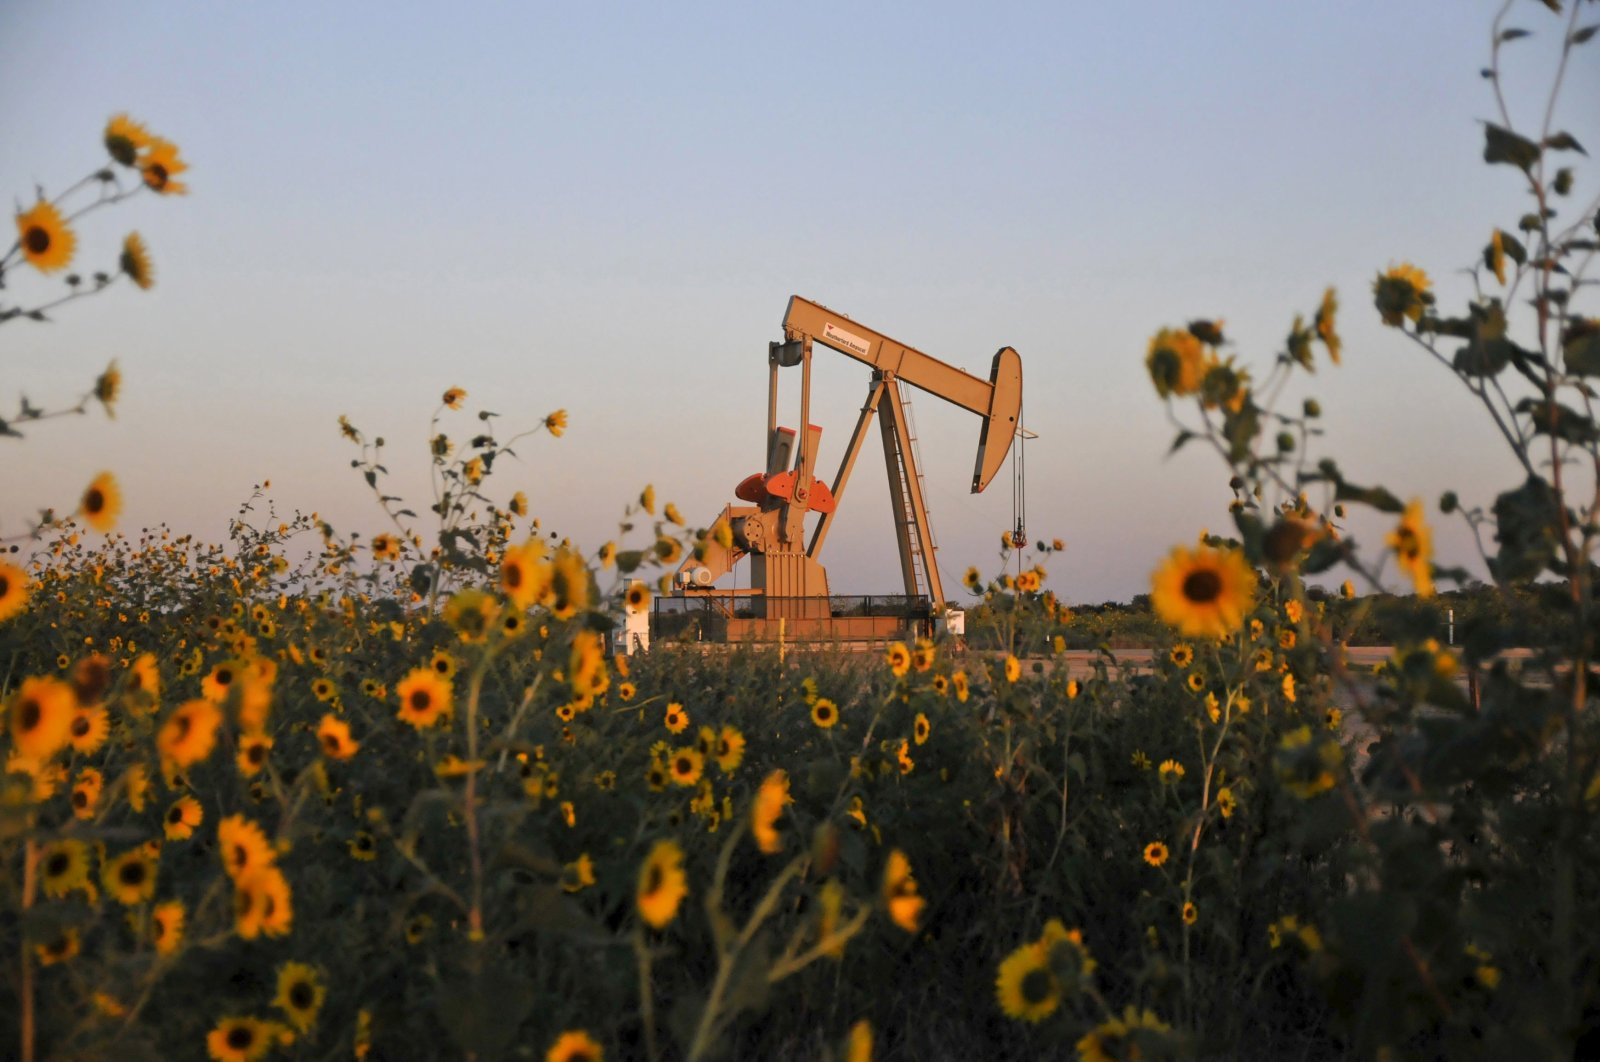 A pump jack operates at a well site leased by Devon Energy Production Company near Guthrie, Oklahoma, the U.S., Sept. 15, 2015. (Reuters Photo)